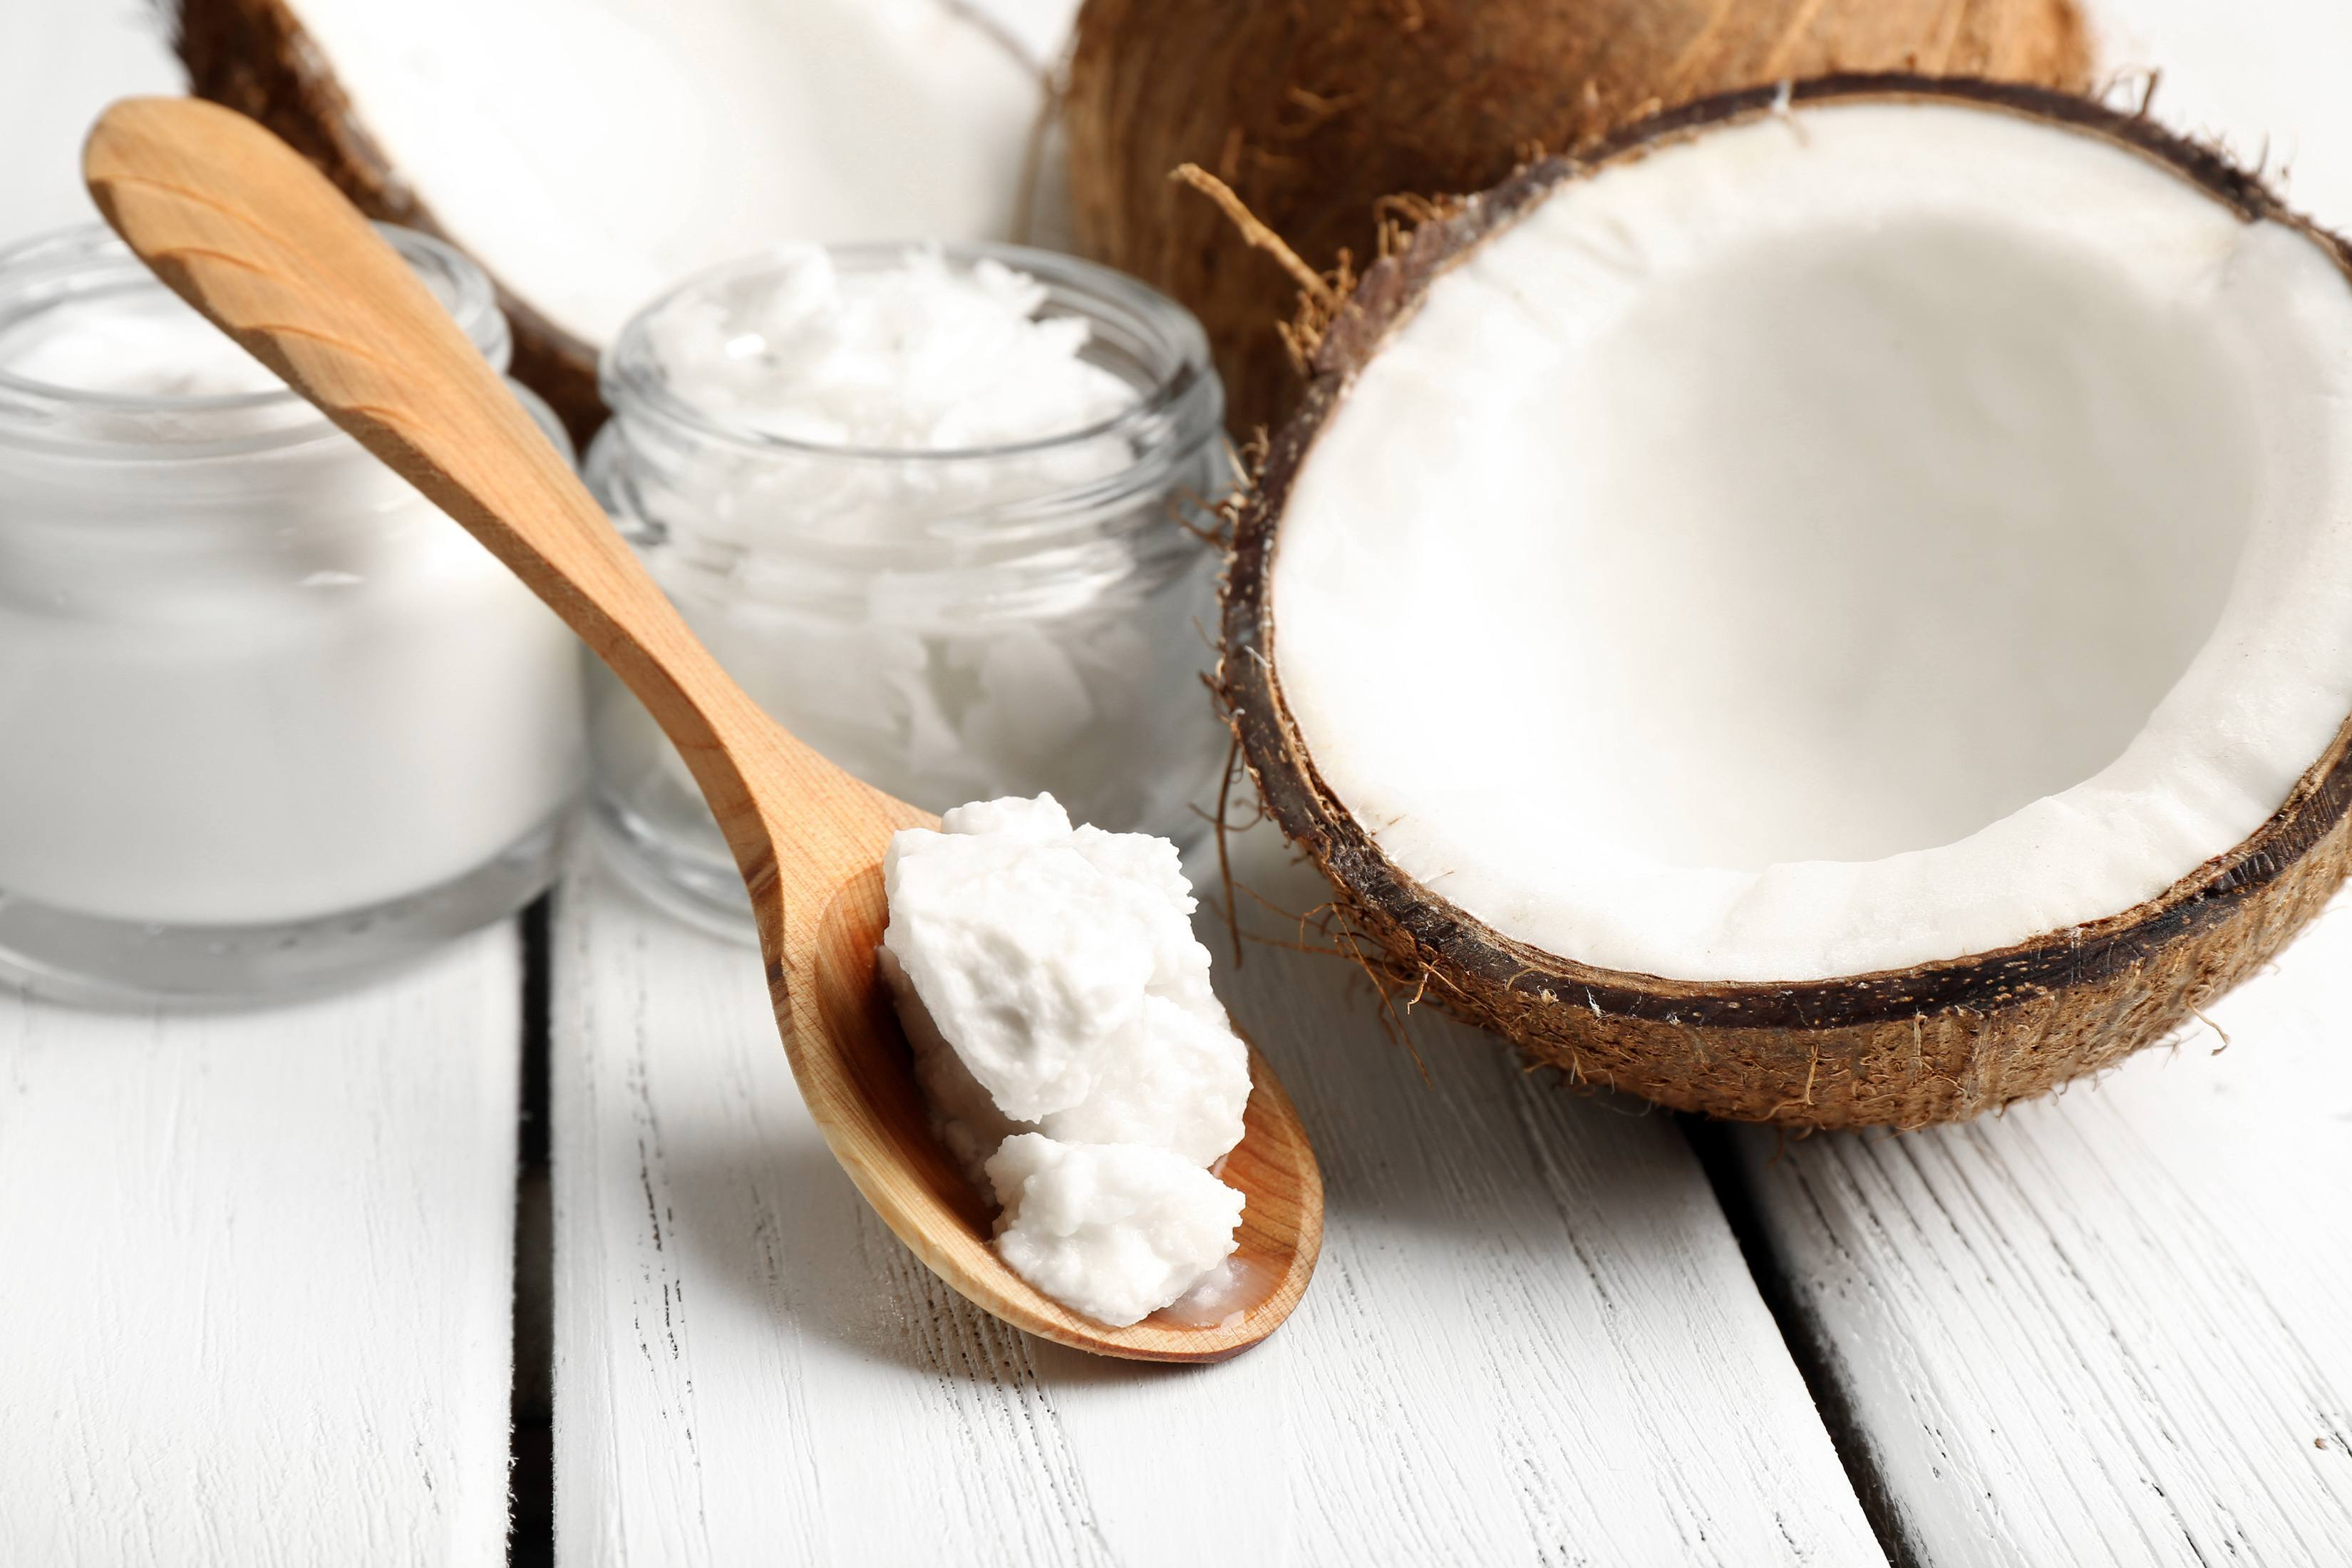 Organic coconut oil wholesale & private label service as well as in bulk from envir